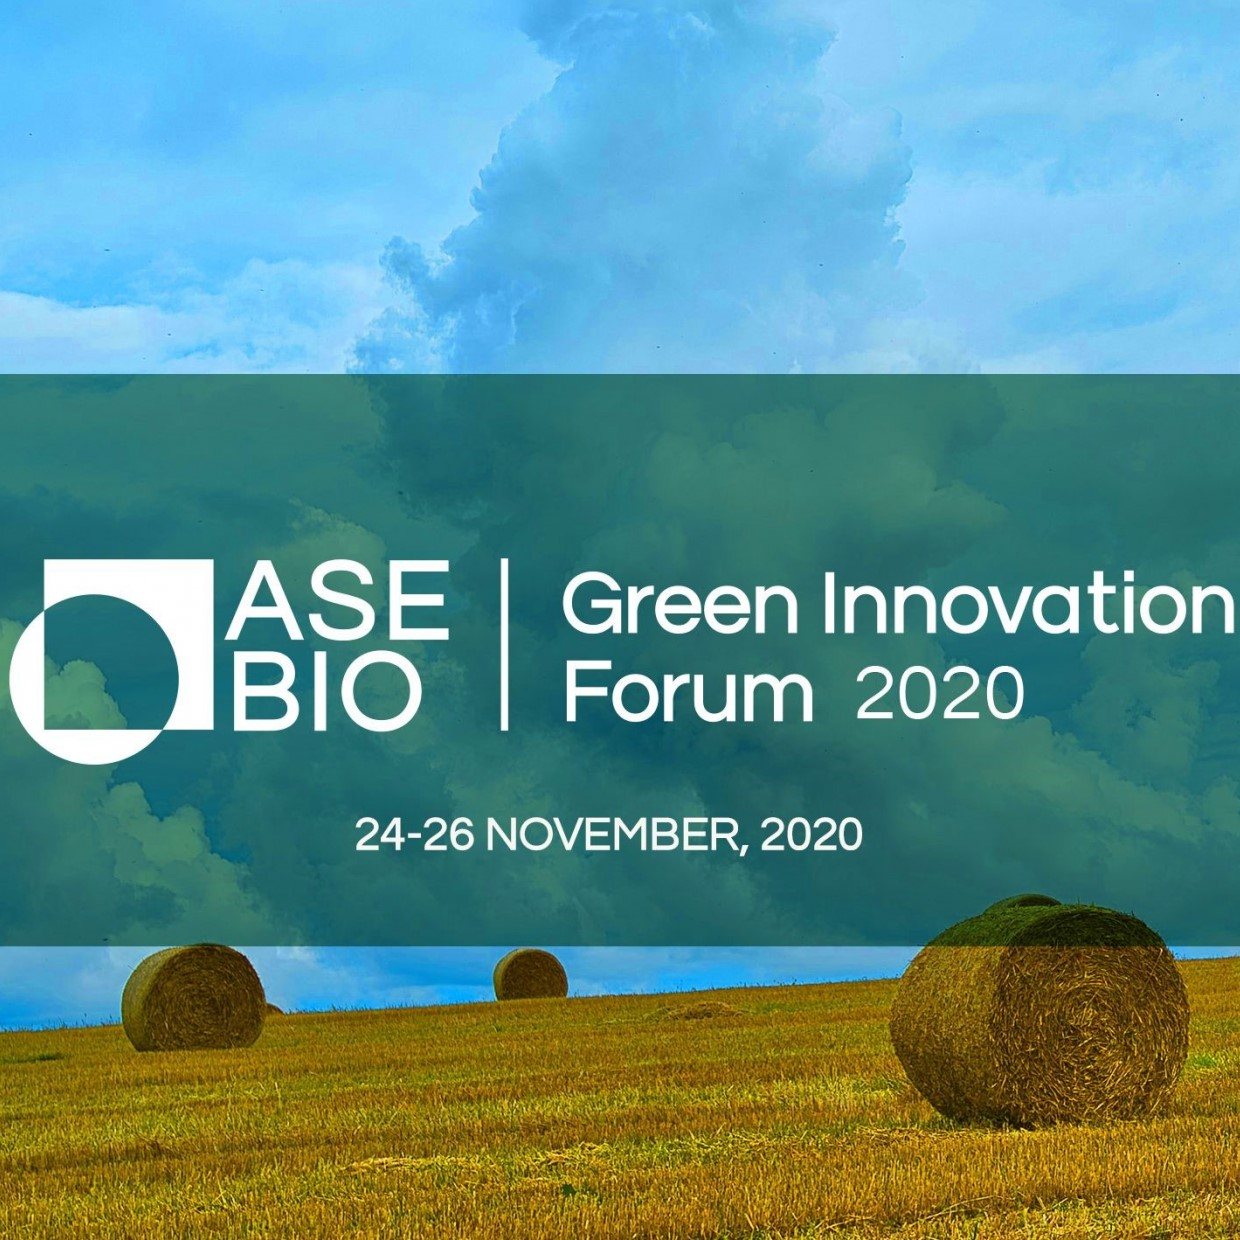 AlgaEnergy, protagonist of AseBio's Green Innovation Forum